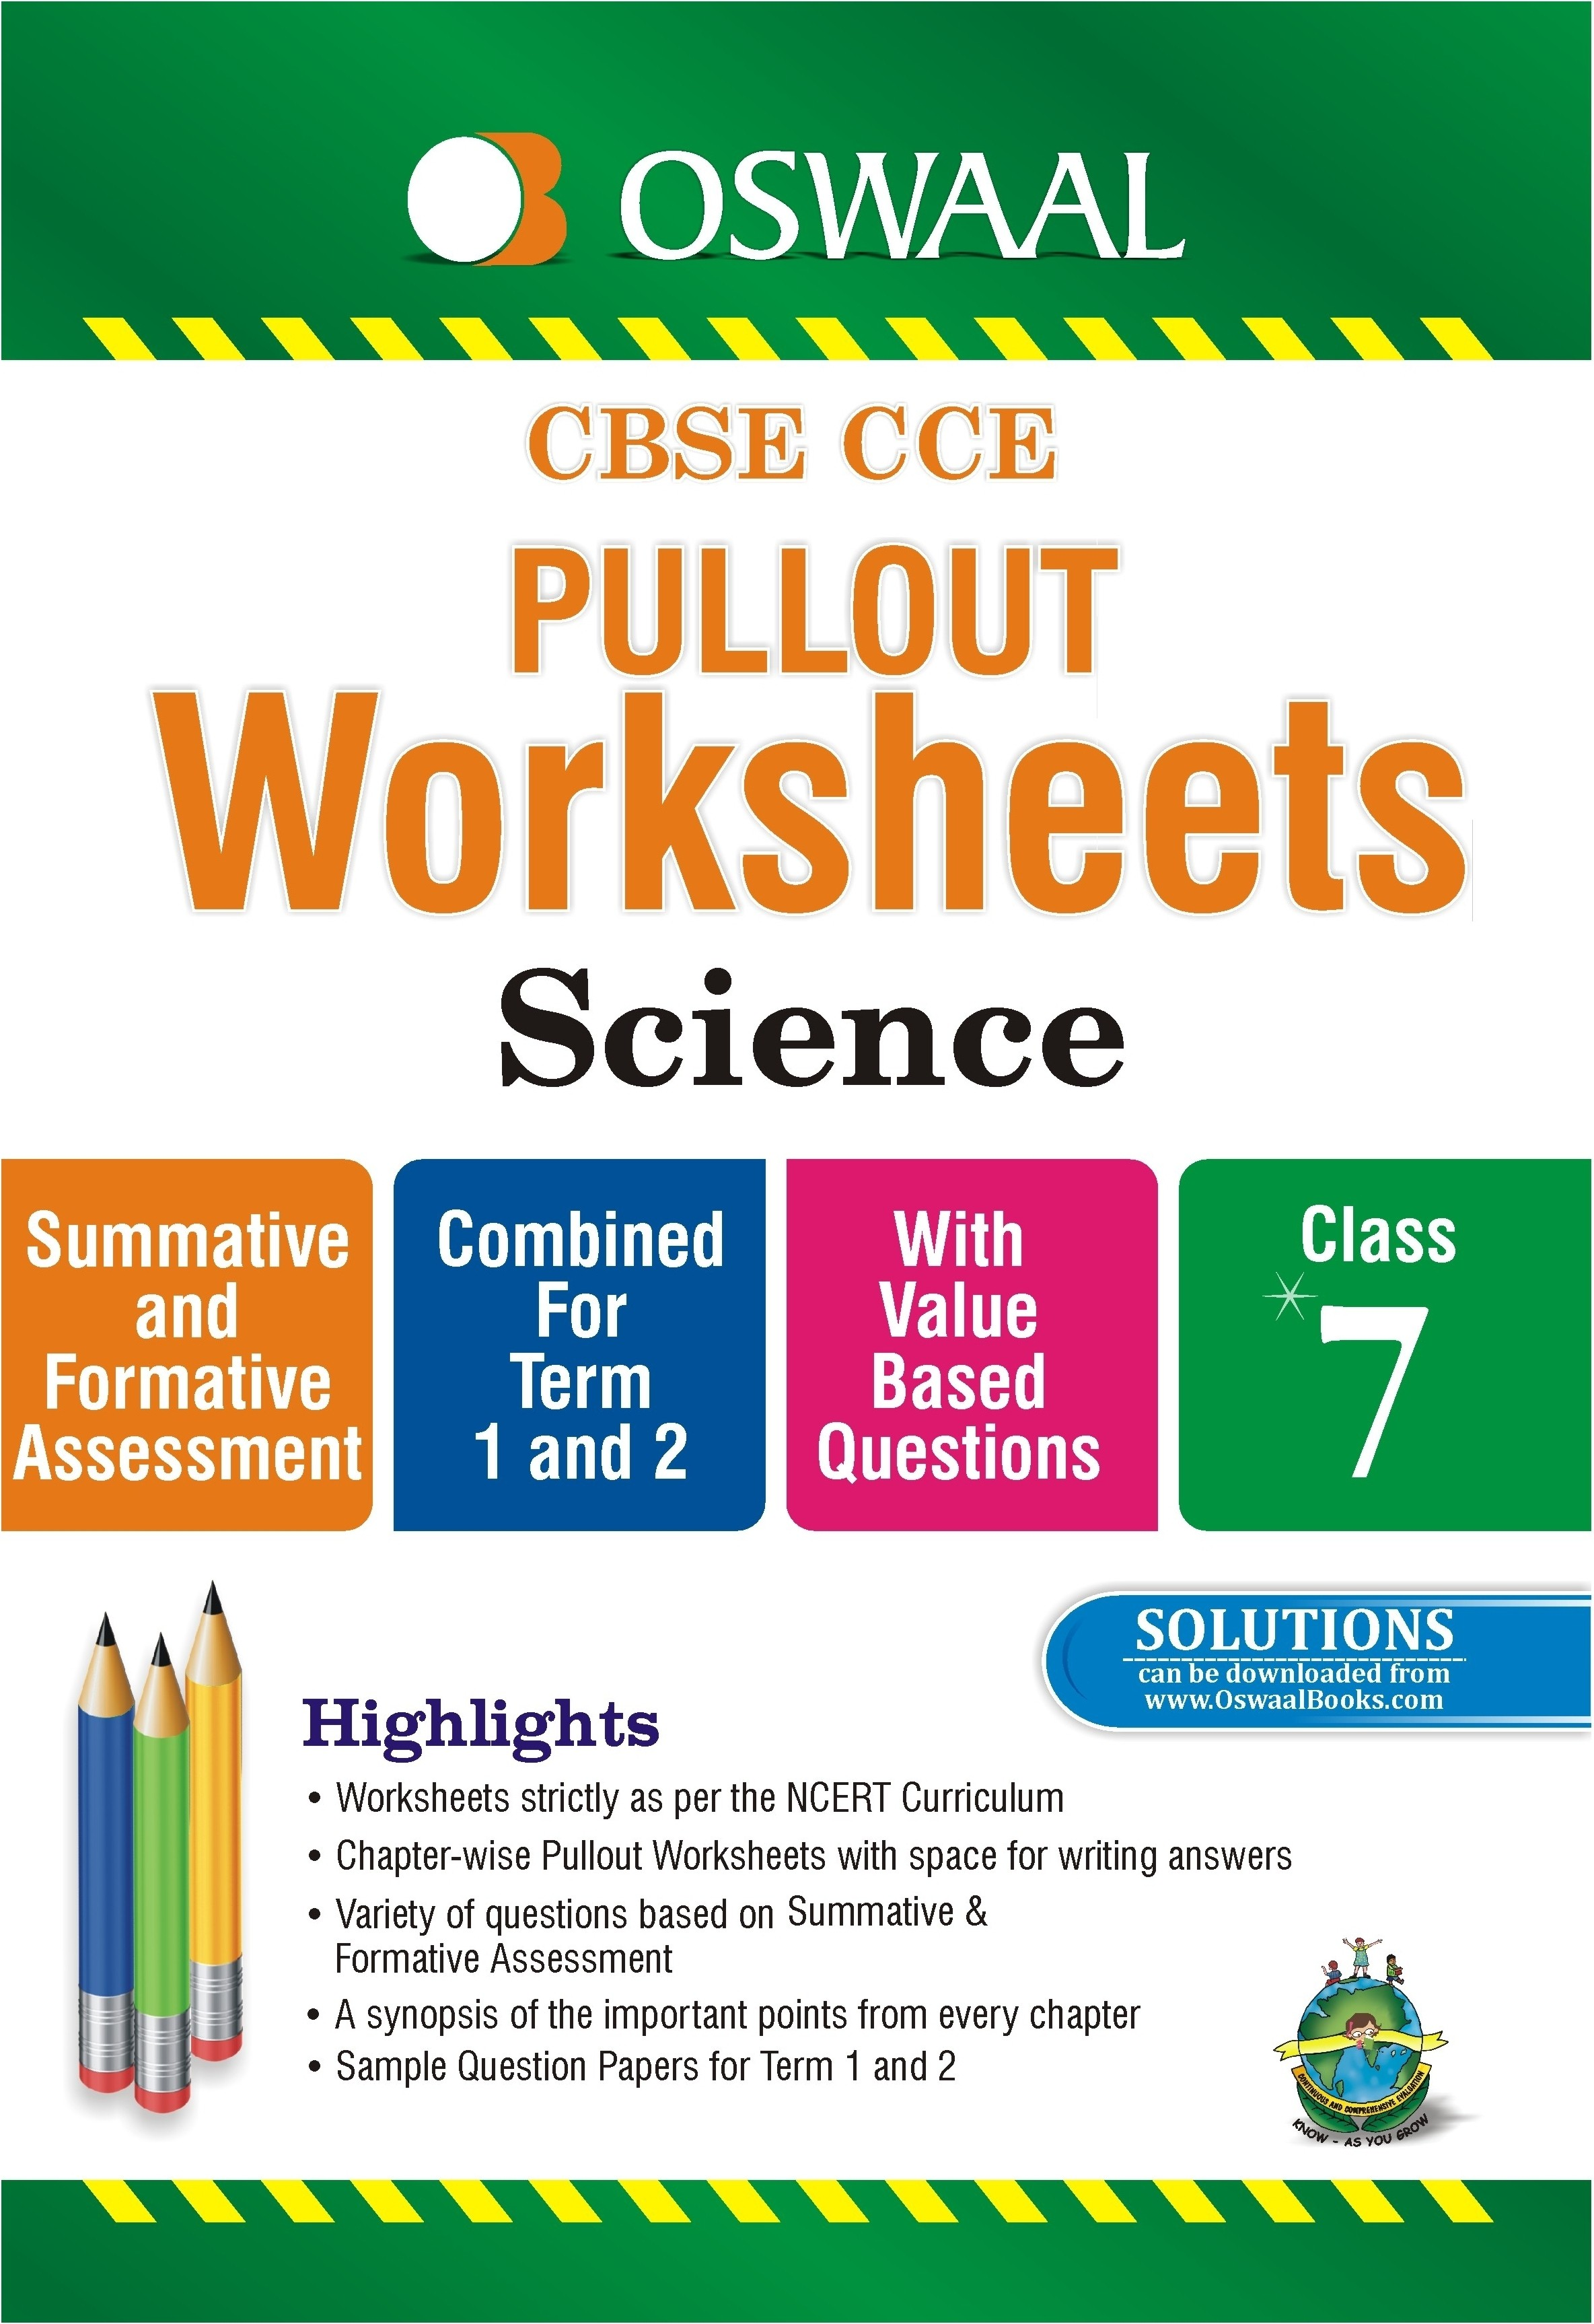 Cbse Cce Pullout Worksheets